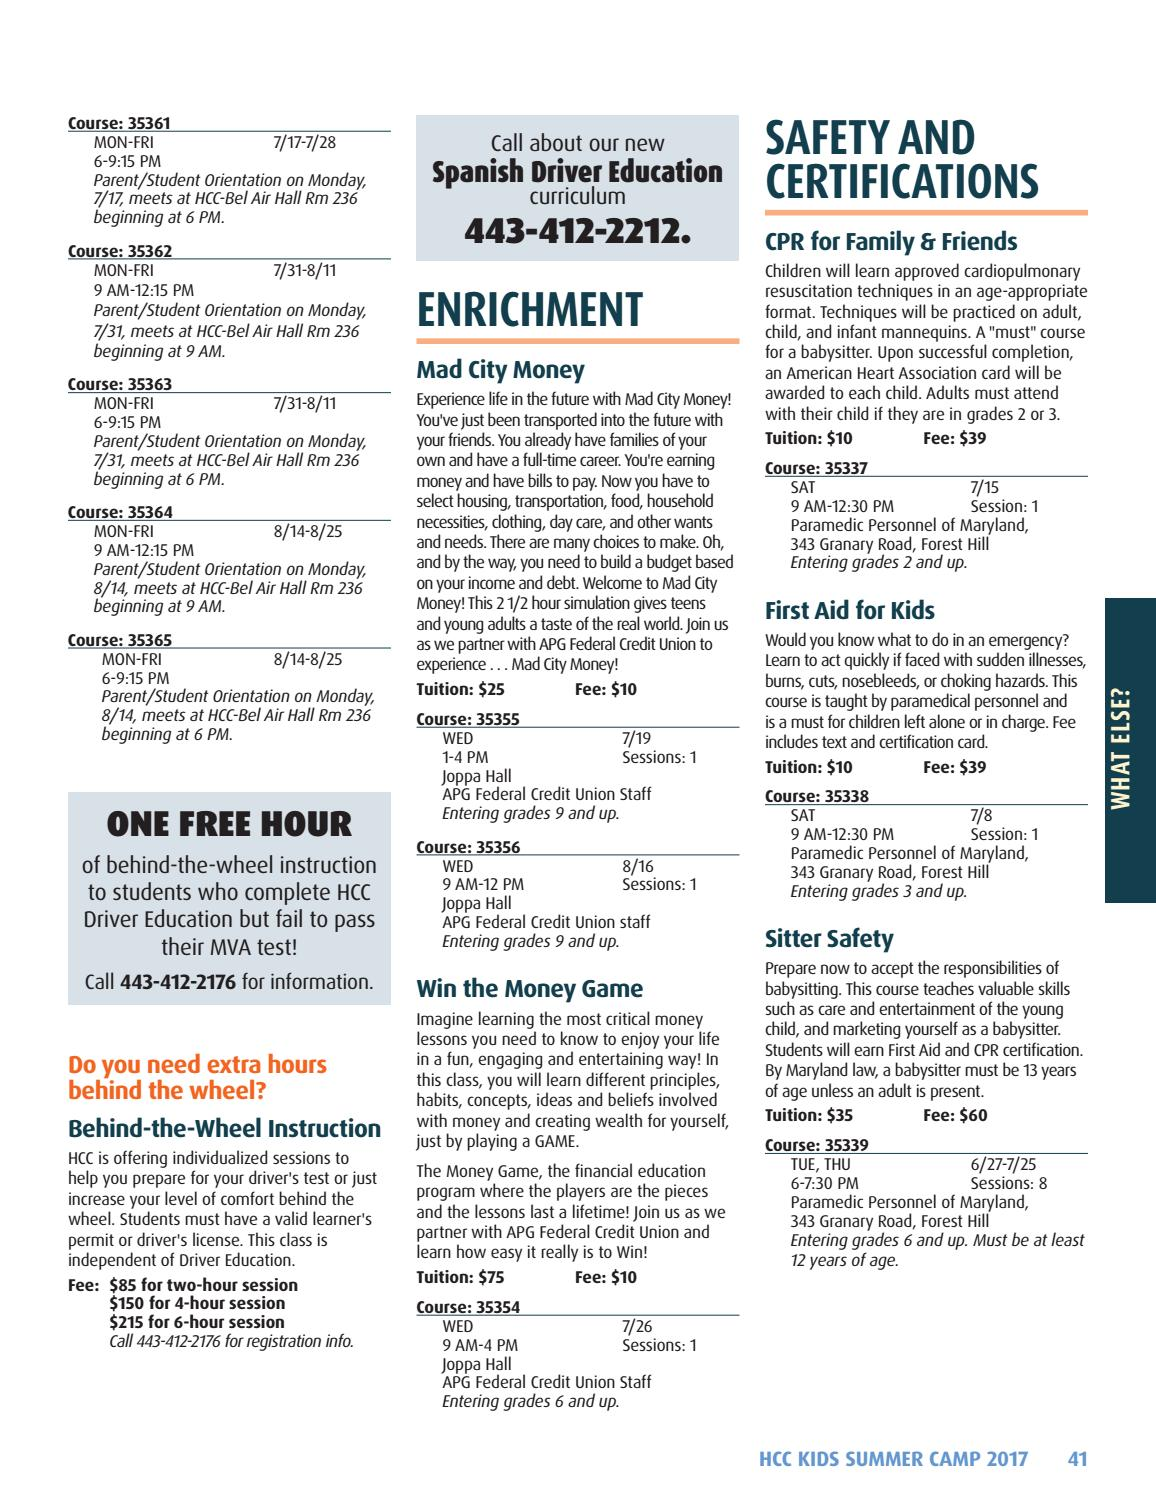 HCC Kids Summer Camp Catalog by Harford Community College - issuu